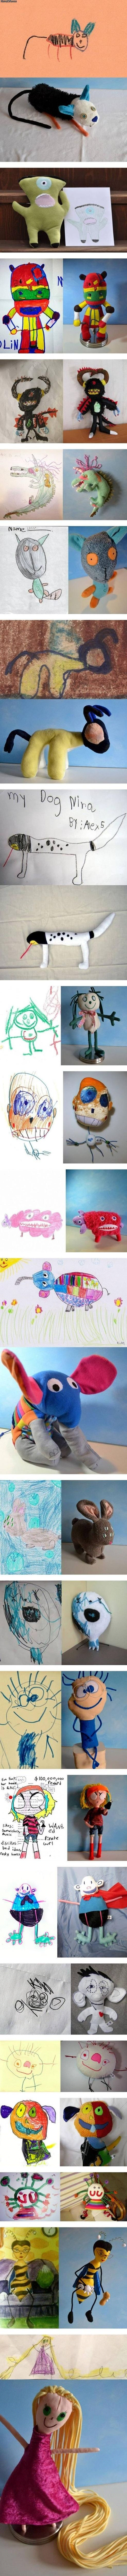 Toy company that turns kids drawings into toys